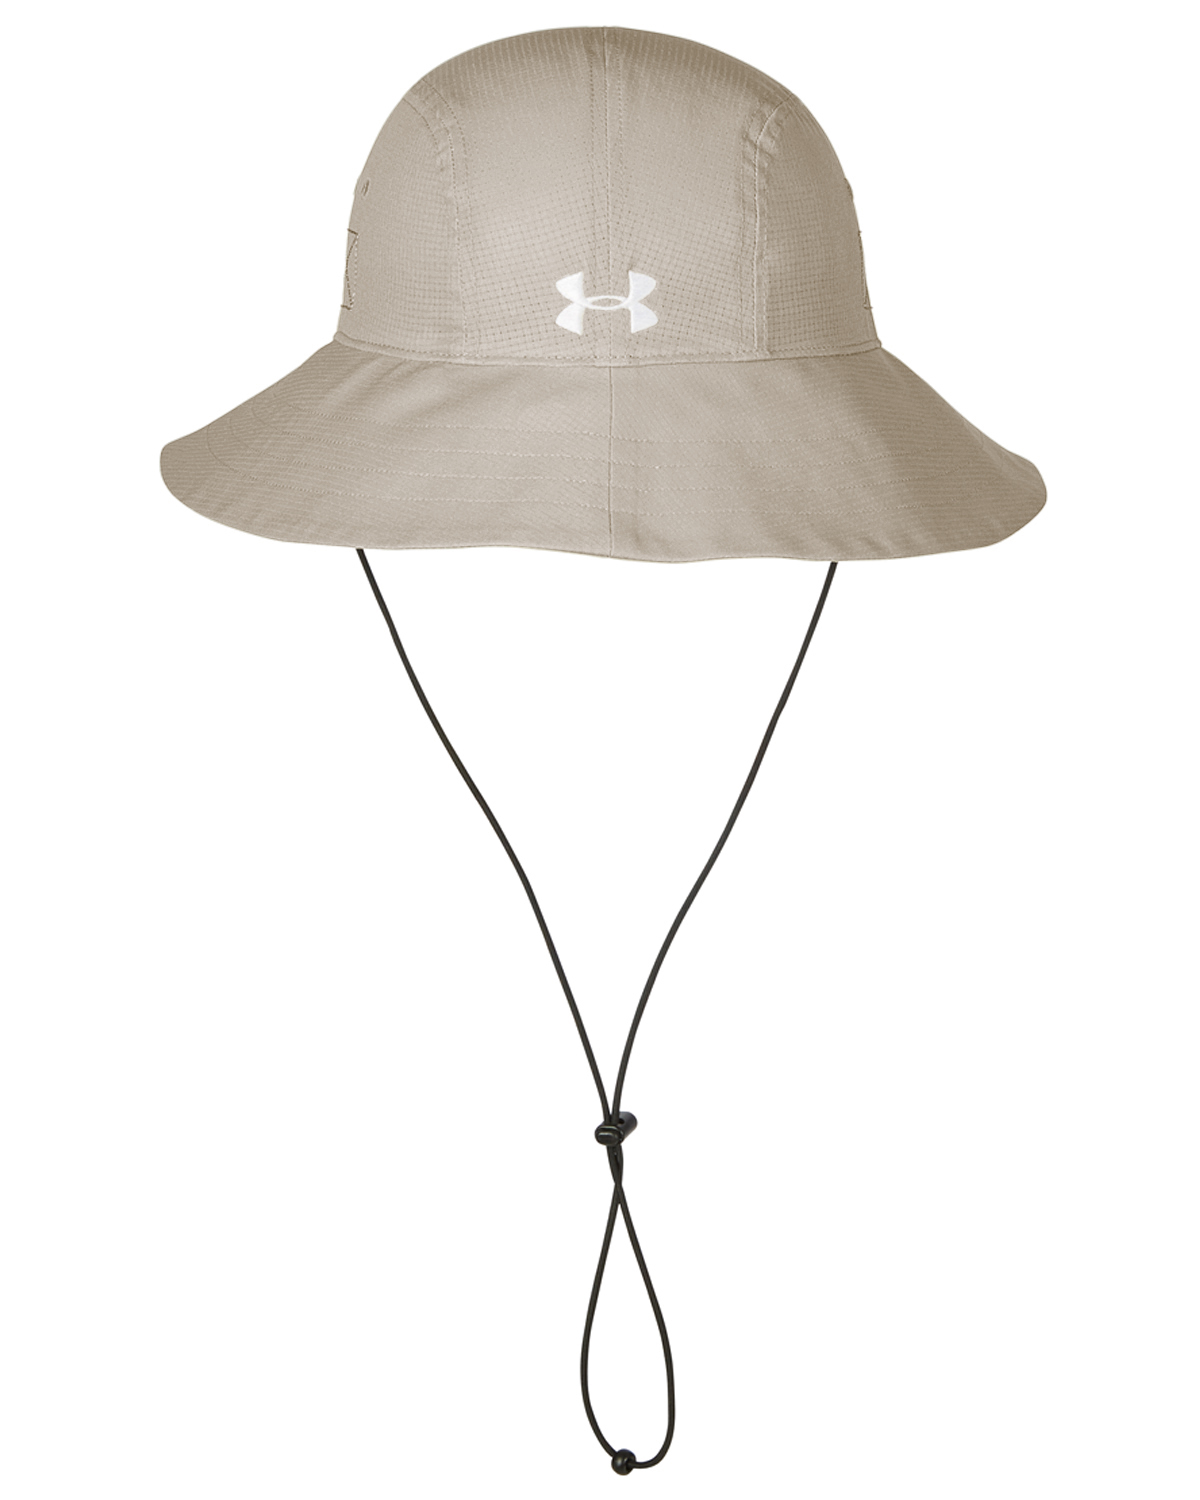 UNISEX UA WARRIOR BUCKET